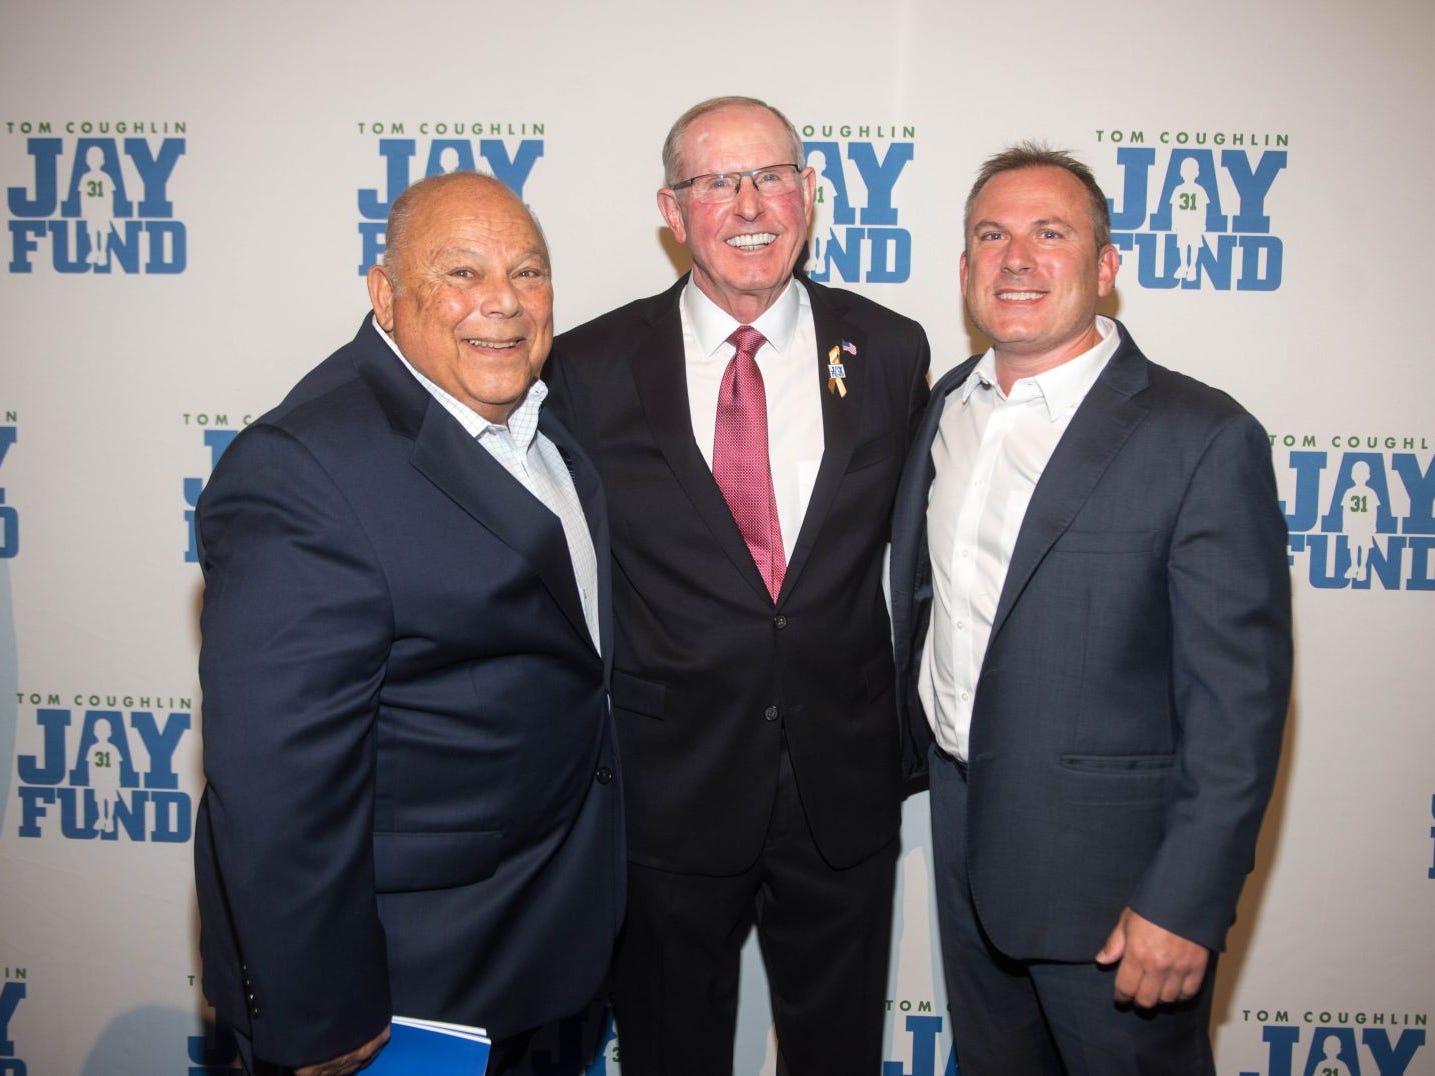 Arthur Sheren, Tom Coughlin and Jeff Sheren. The 14th annual Jay Fund Champions for Children Gala was held at Cipriani 42nd Street. 09/21/2018